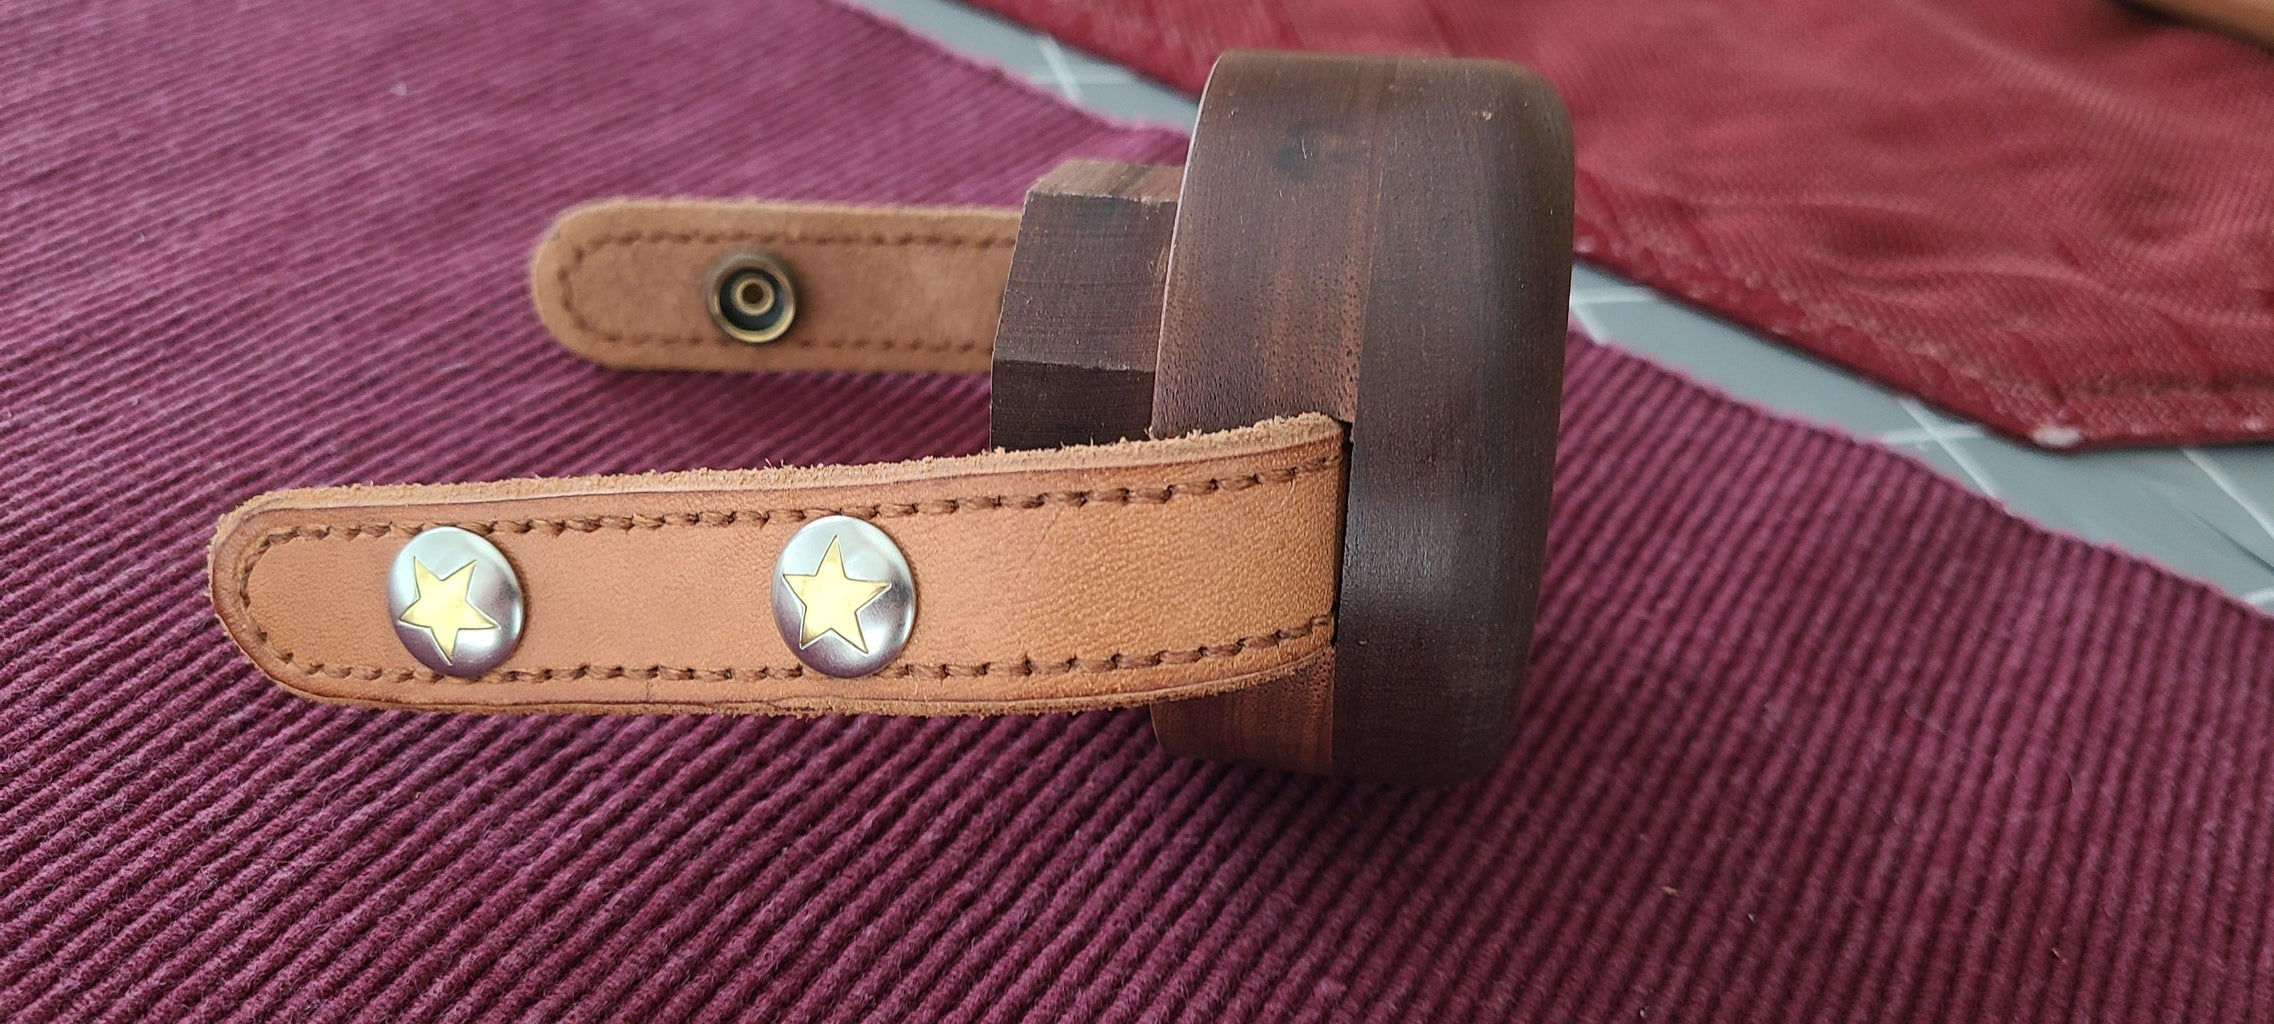 Adding Snaps to the Strap and Installing It in the Top Cap